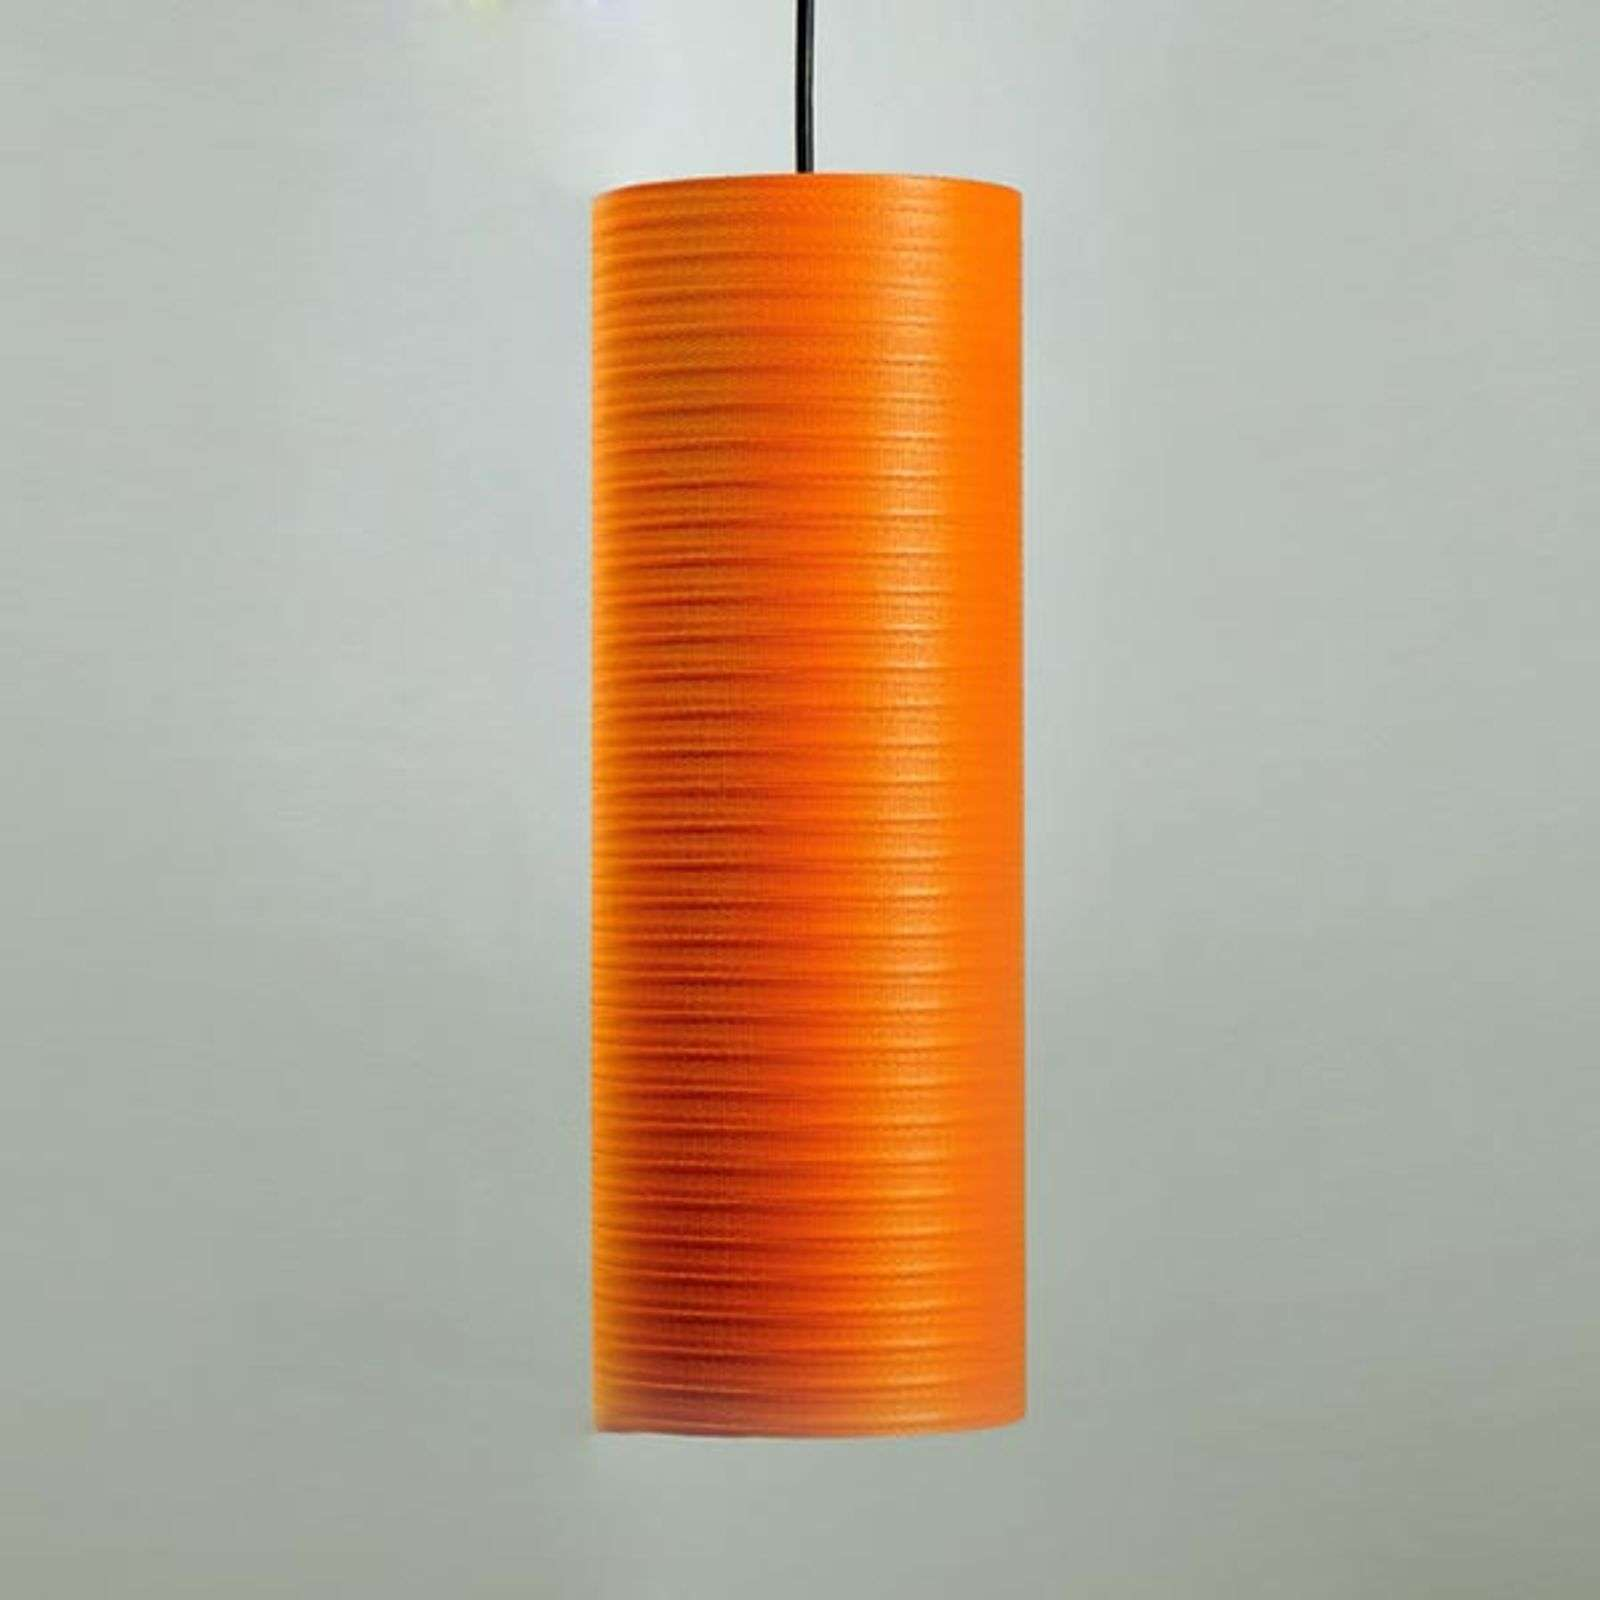 Suspension Tube, 30 cm, orange